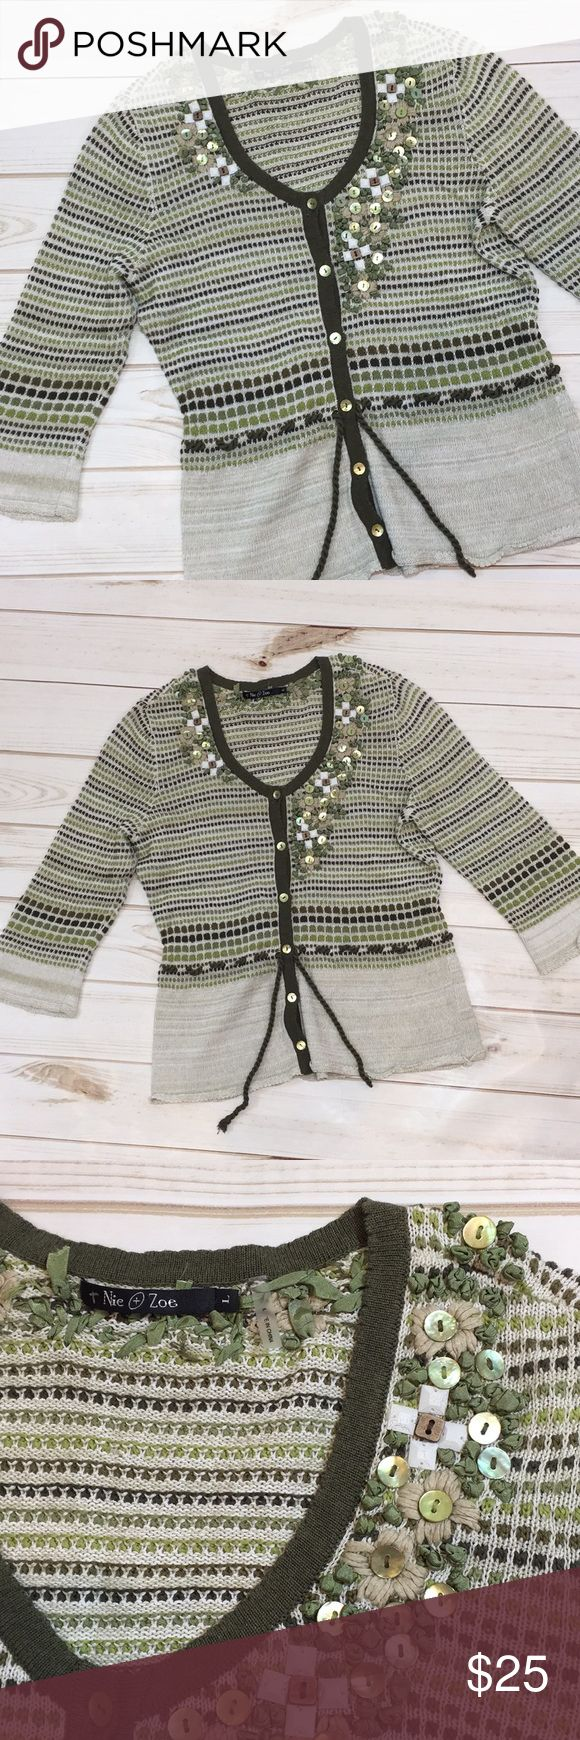 "Nic and Zoe embellished cardigan sweater Nic and Zoe embellished cardigan sweater in size large. There are 3/4 length sleeves. The colors are various shades of green and tan. Approximate measurements: length 22.5"" and chest 18"". NIC + ZOE Sweaters Cardigans"